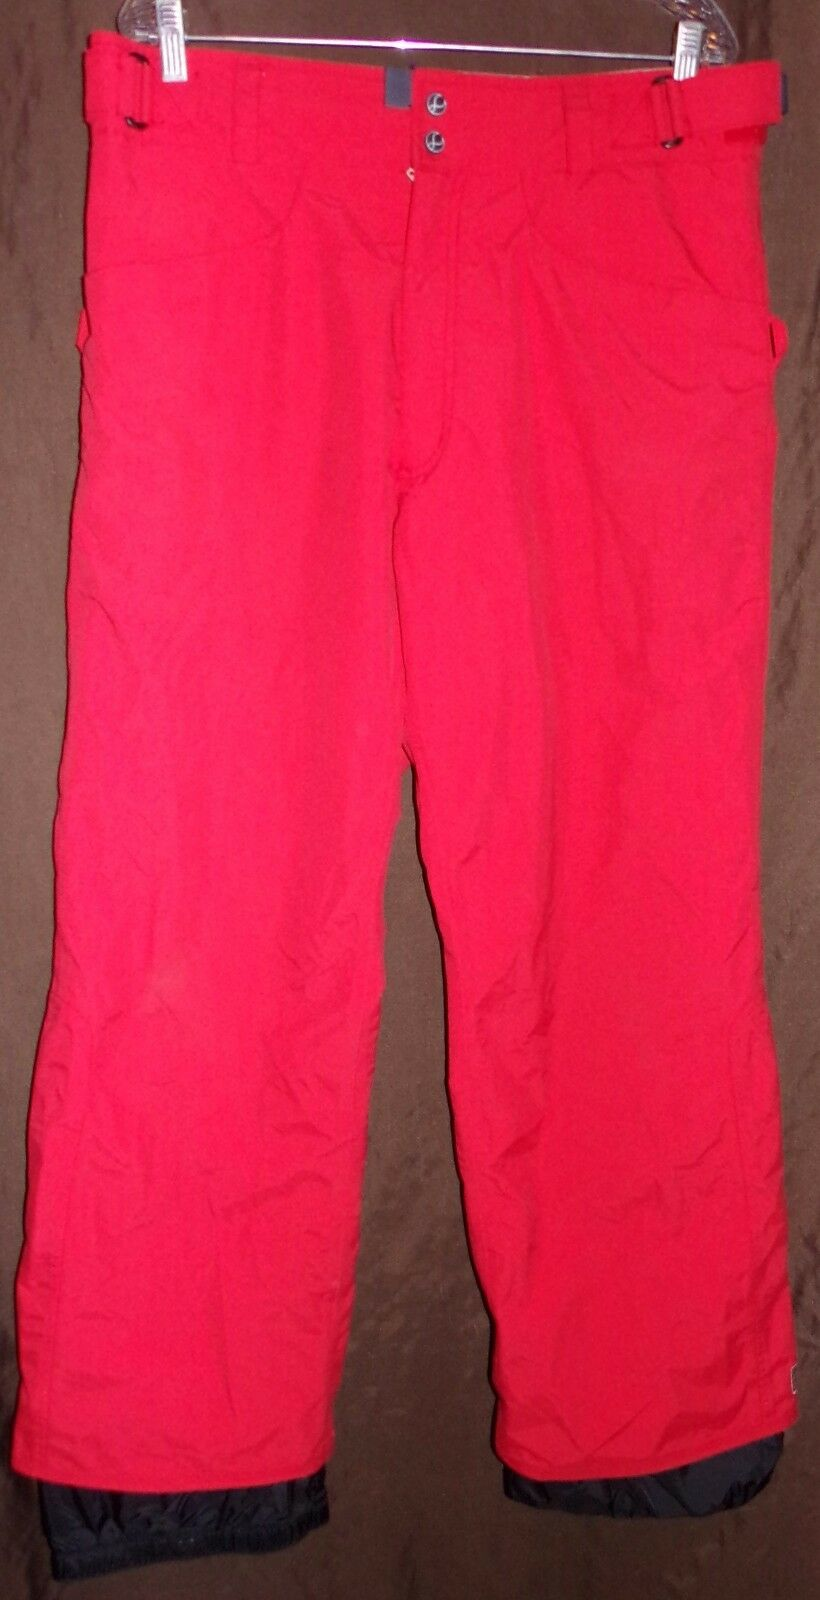 BURTON WOMENS BIOLITE WATERPROOF BREATHABLE TAPED SEAMS MESH LINED PANTS LARGE